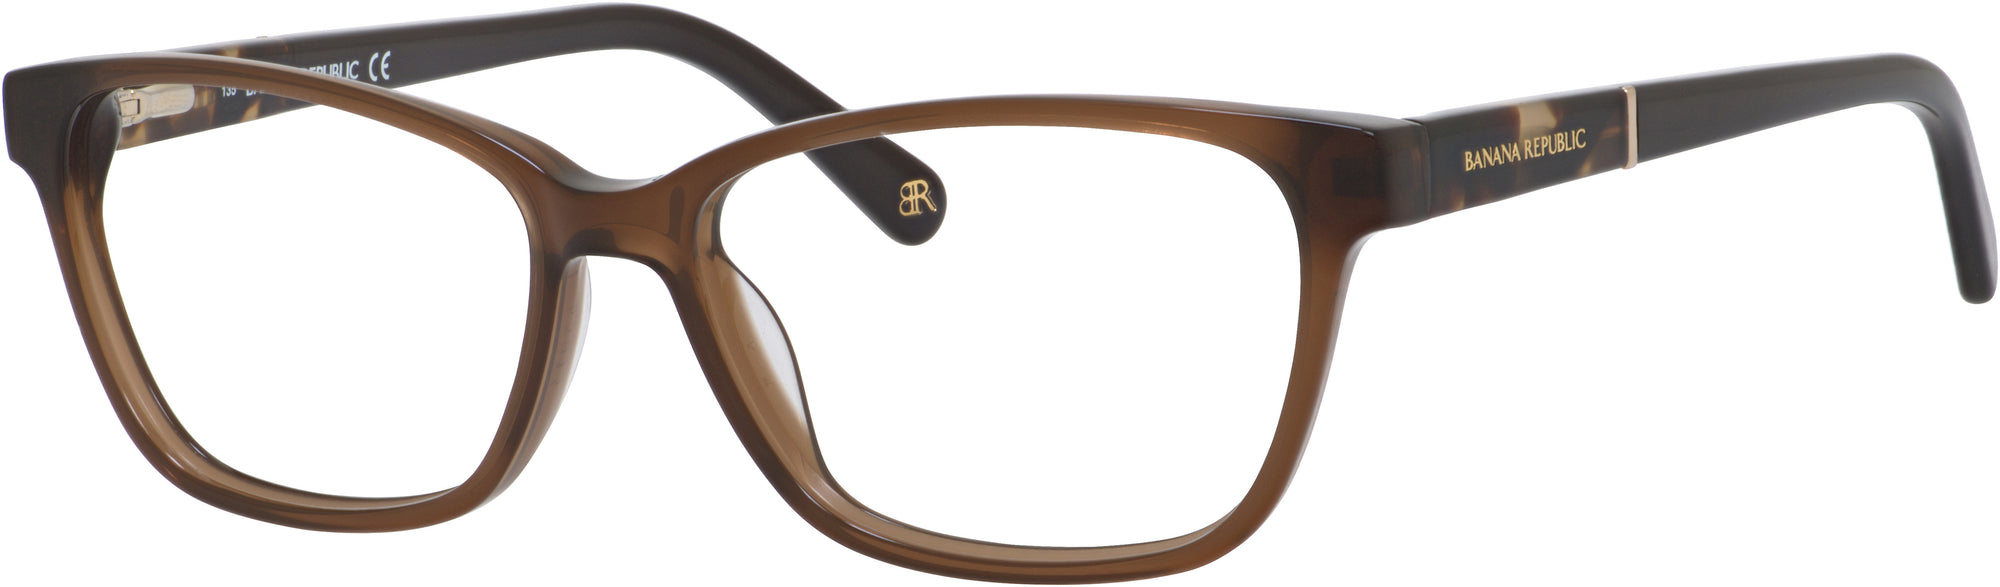 Banana Republic Clare Cat Eye/butterfly Sunglasses 009Q-009Q  Brown (00 Demo Lens)